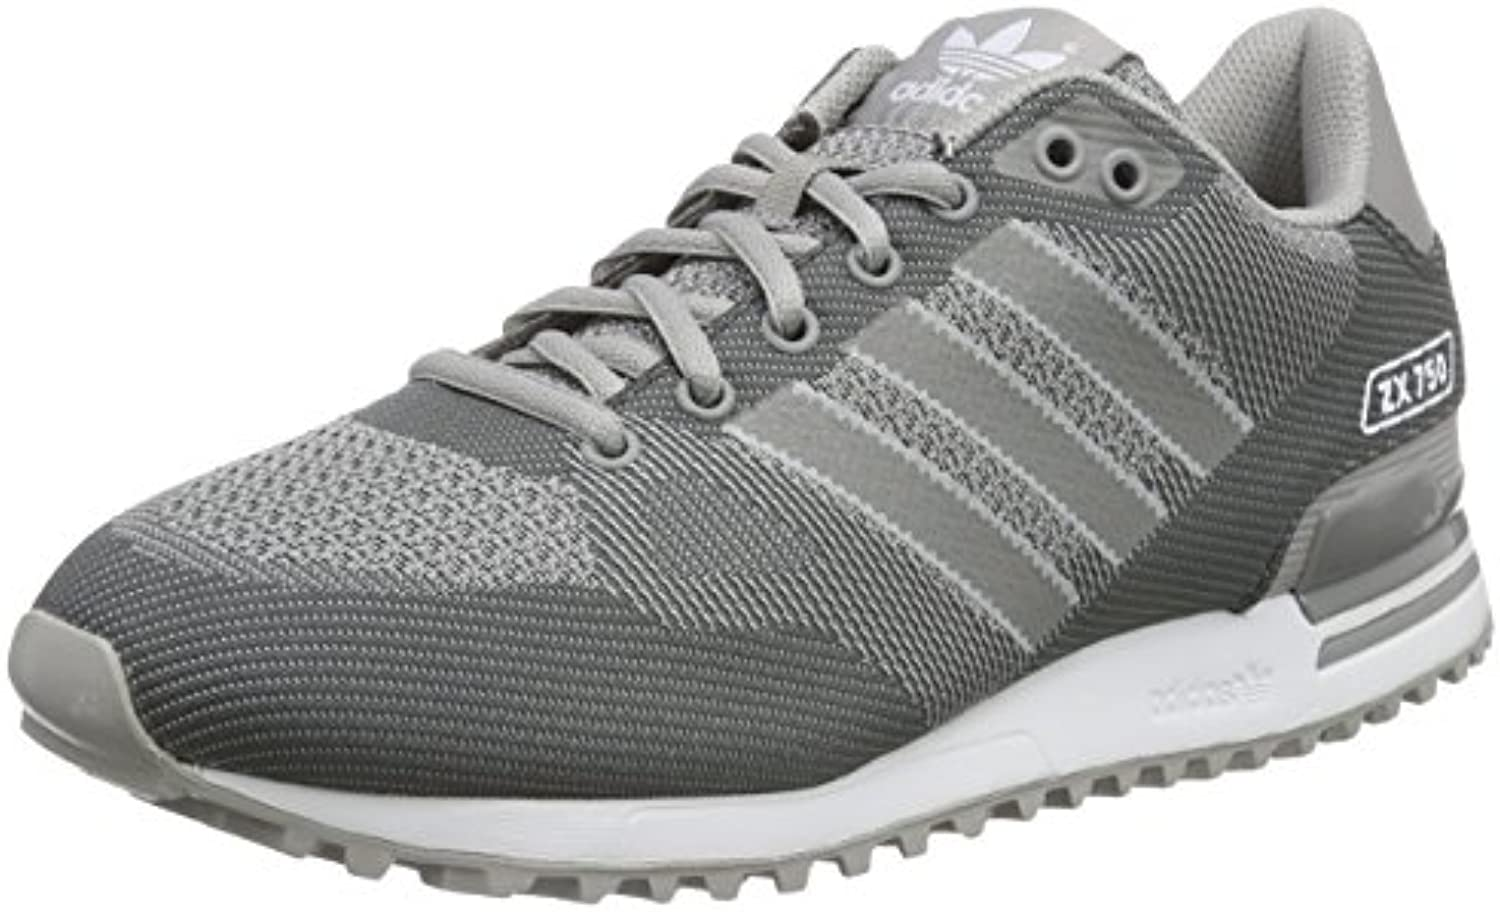 Men's/Women's adidas ZX 750, Men's Men's Men's Trainers New product Let our goods go to the world Selling new products b5236a